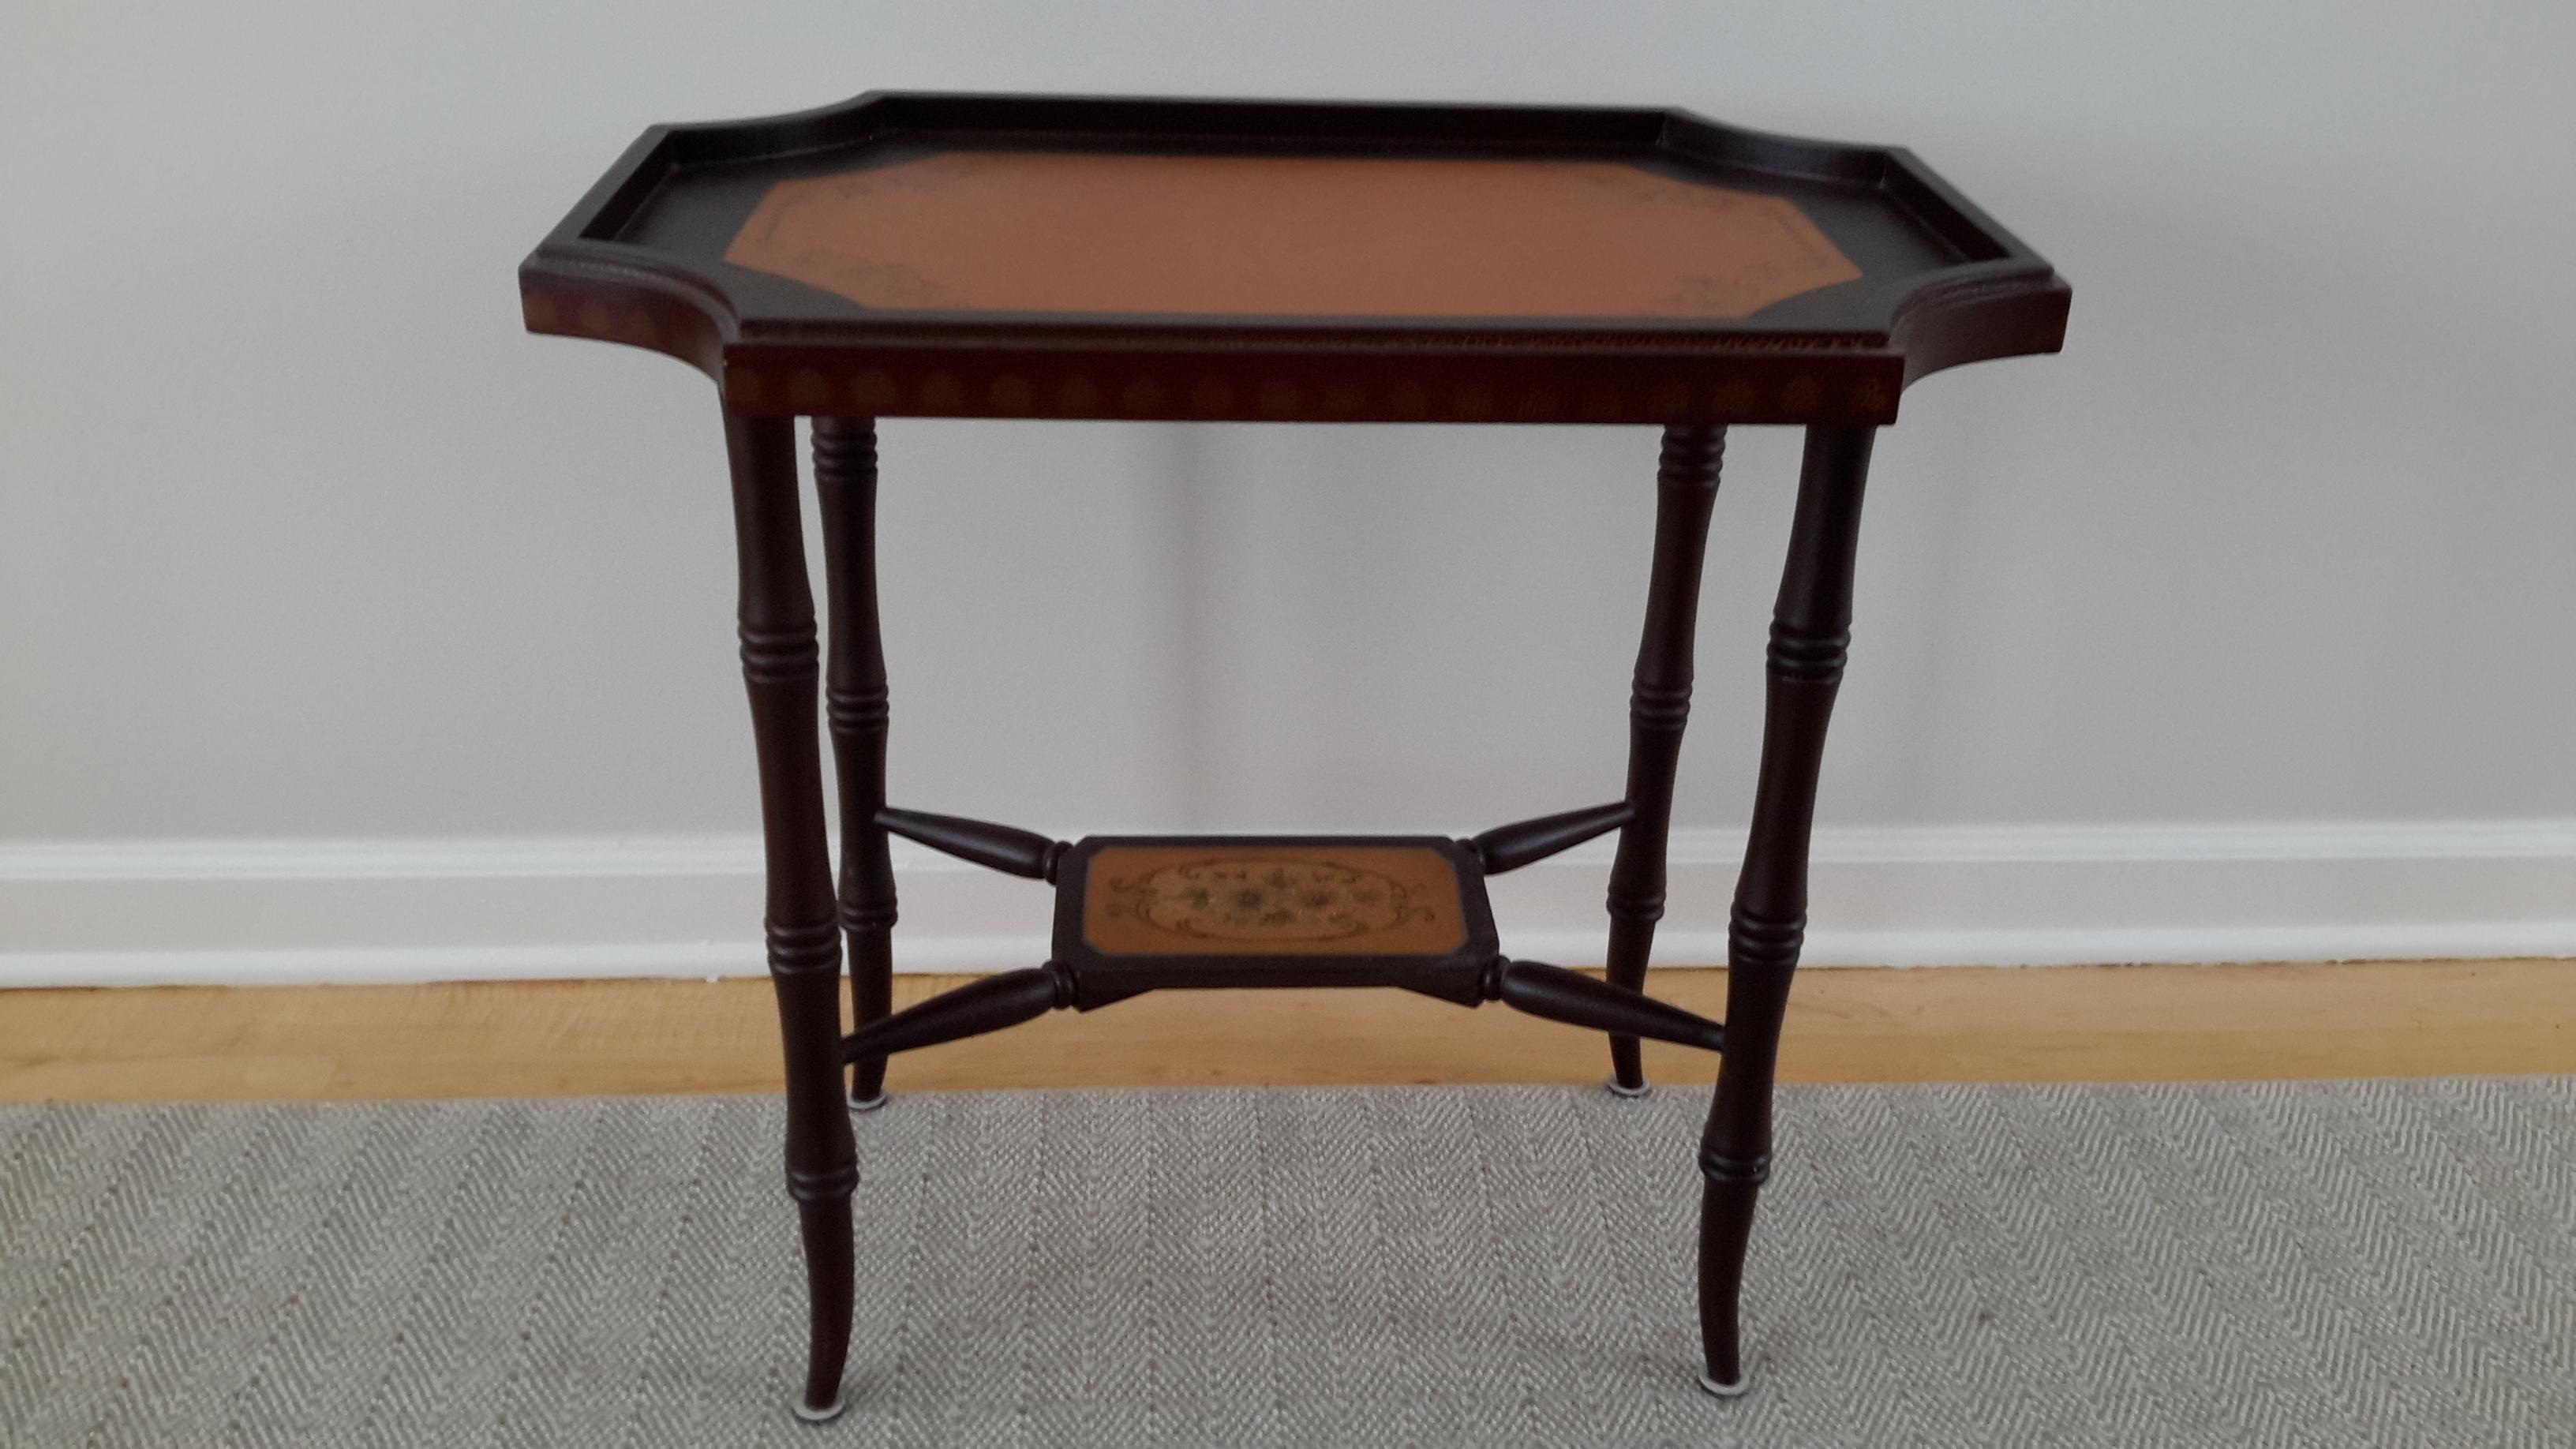 Traditional Tray Table By British Traditions For Sale   Image 3 Of 6